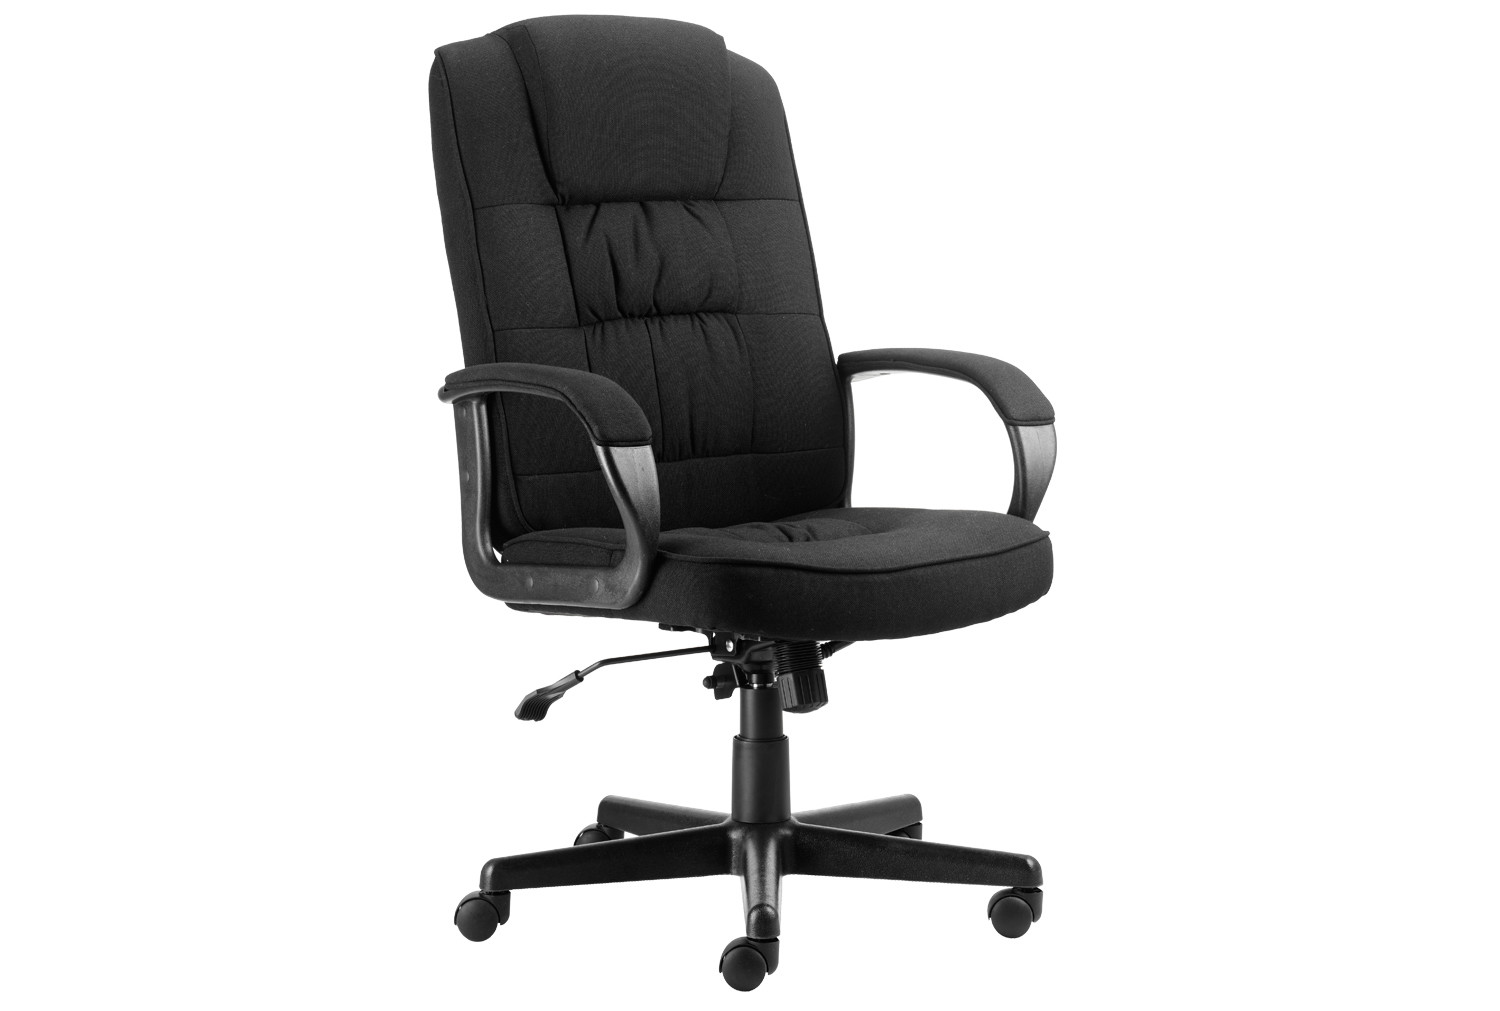 Muscat fabric executive chair